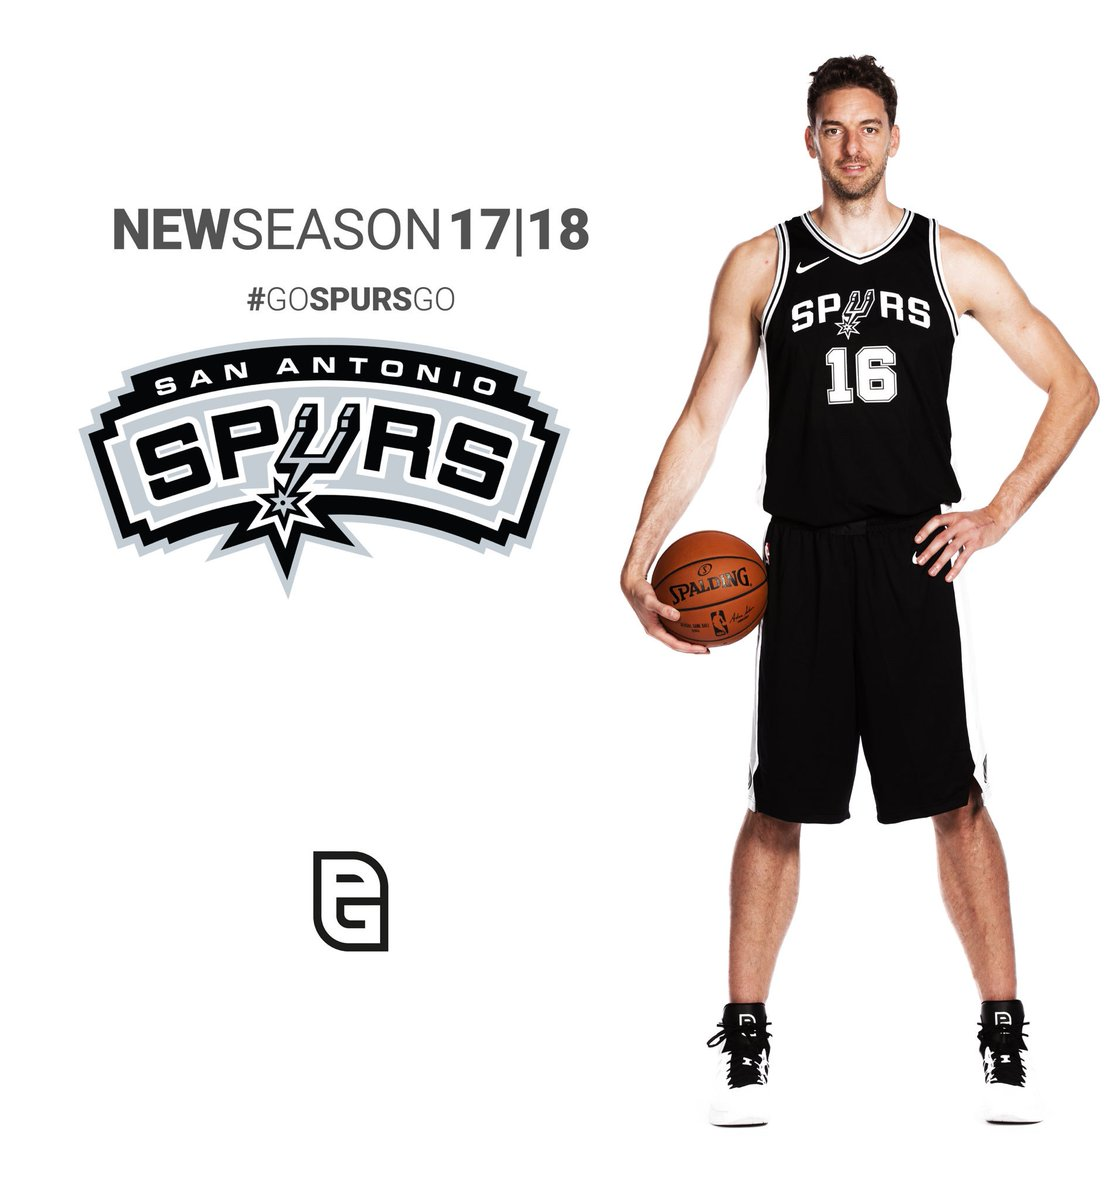 We are ready!! 💪 🏀 ¡IT'S GAME DAY!  👉 @spurs 🆚 @Timberwolves  🏠 @attce...